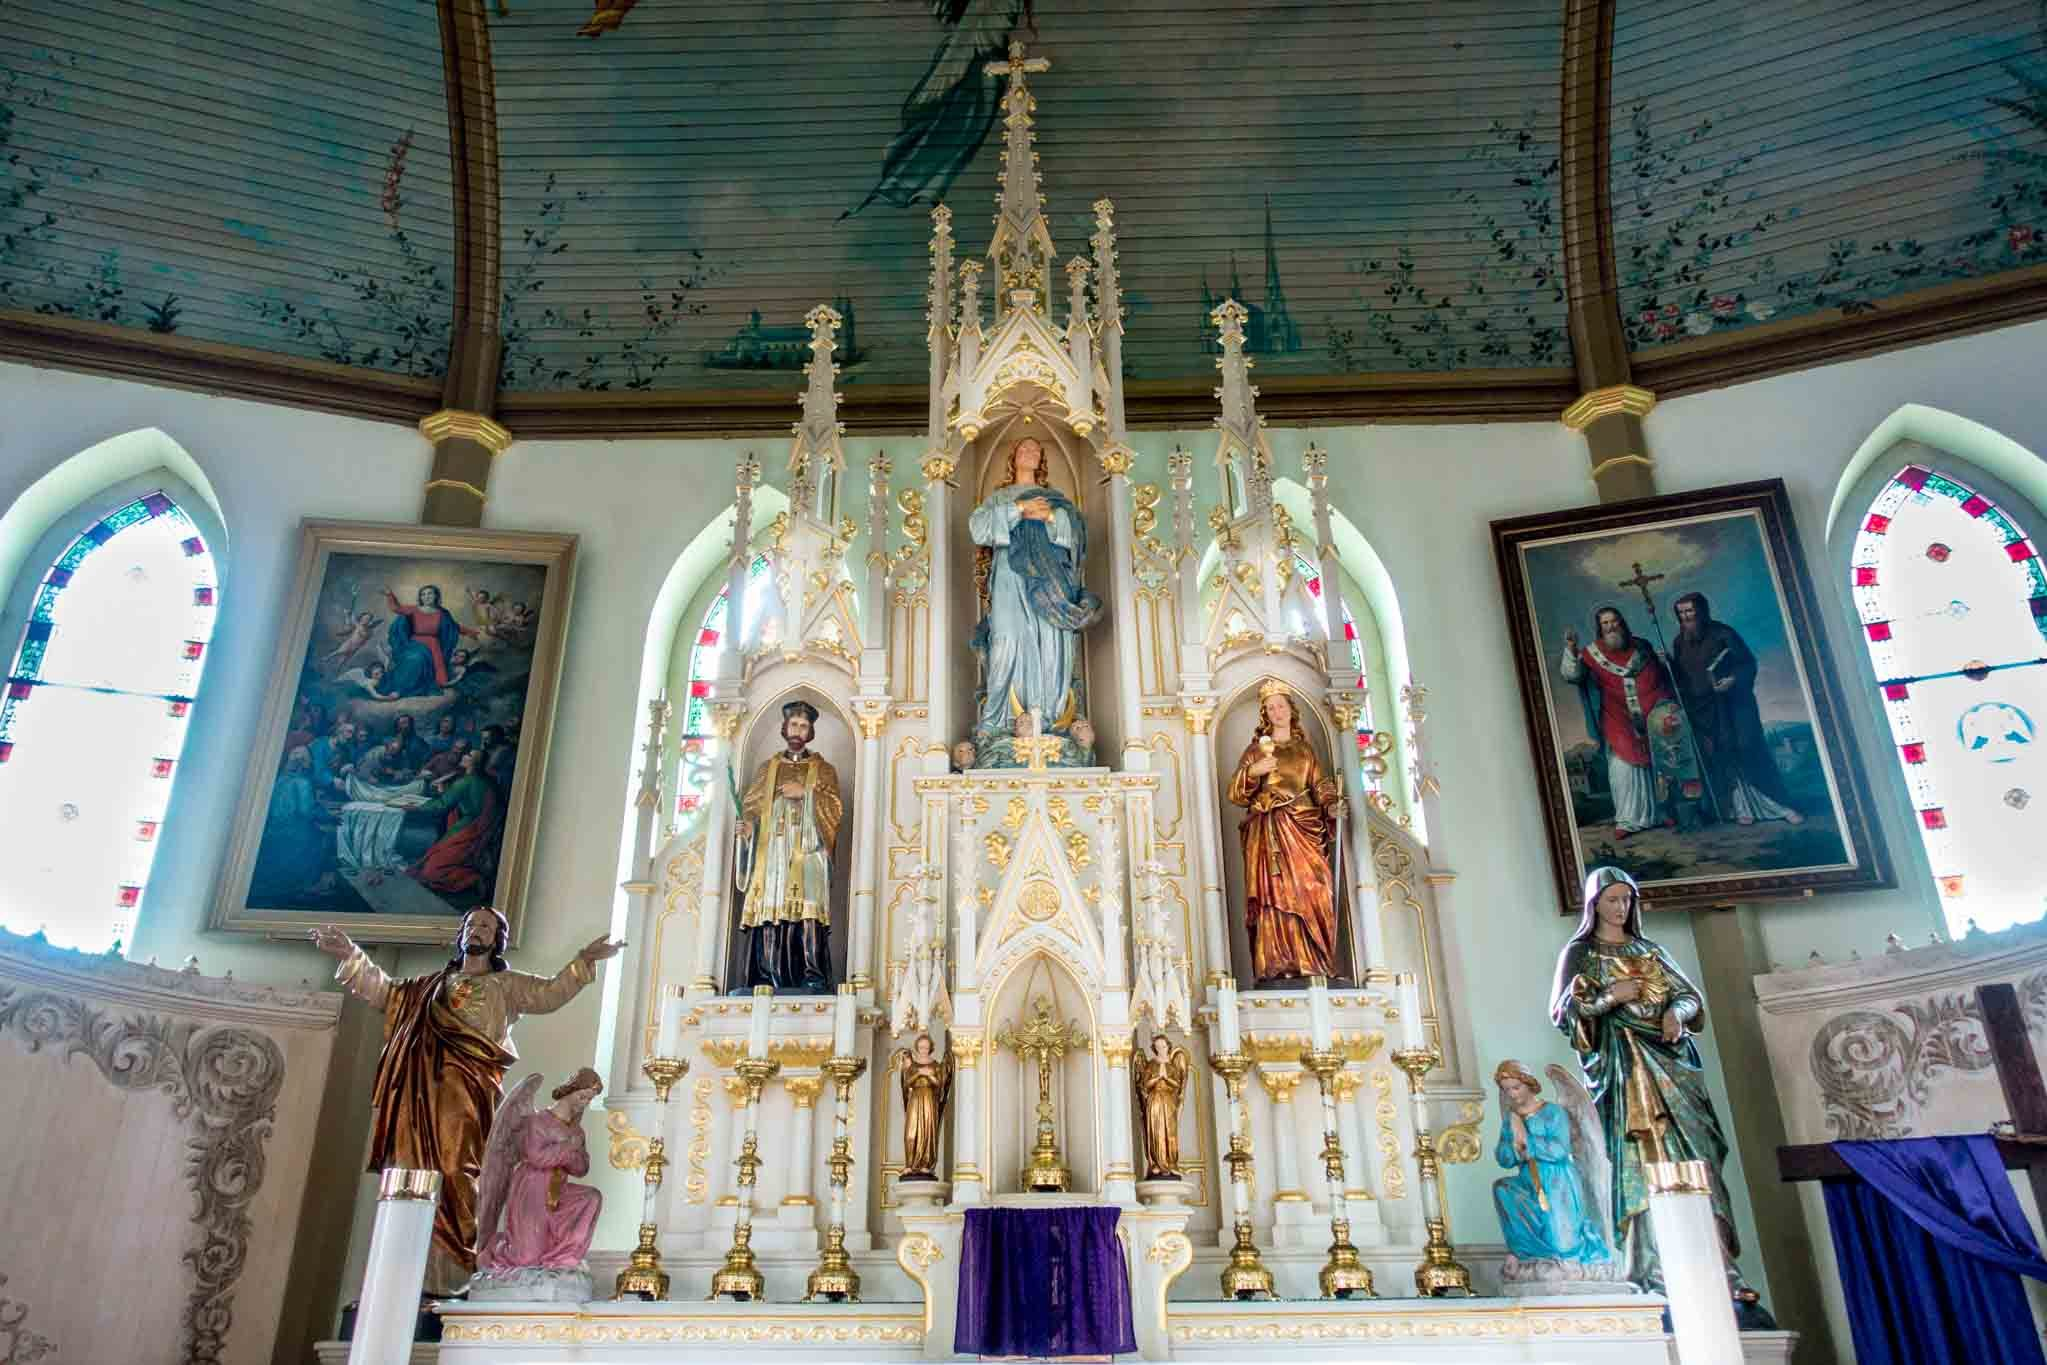 Altar, statues, and turquoise ceiling in church